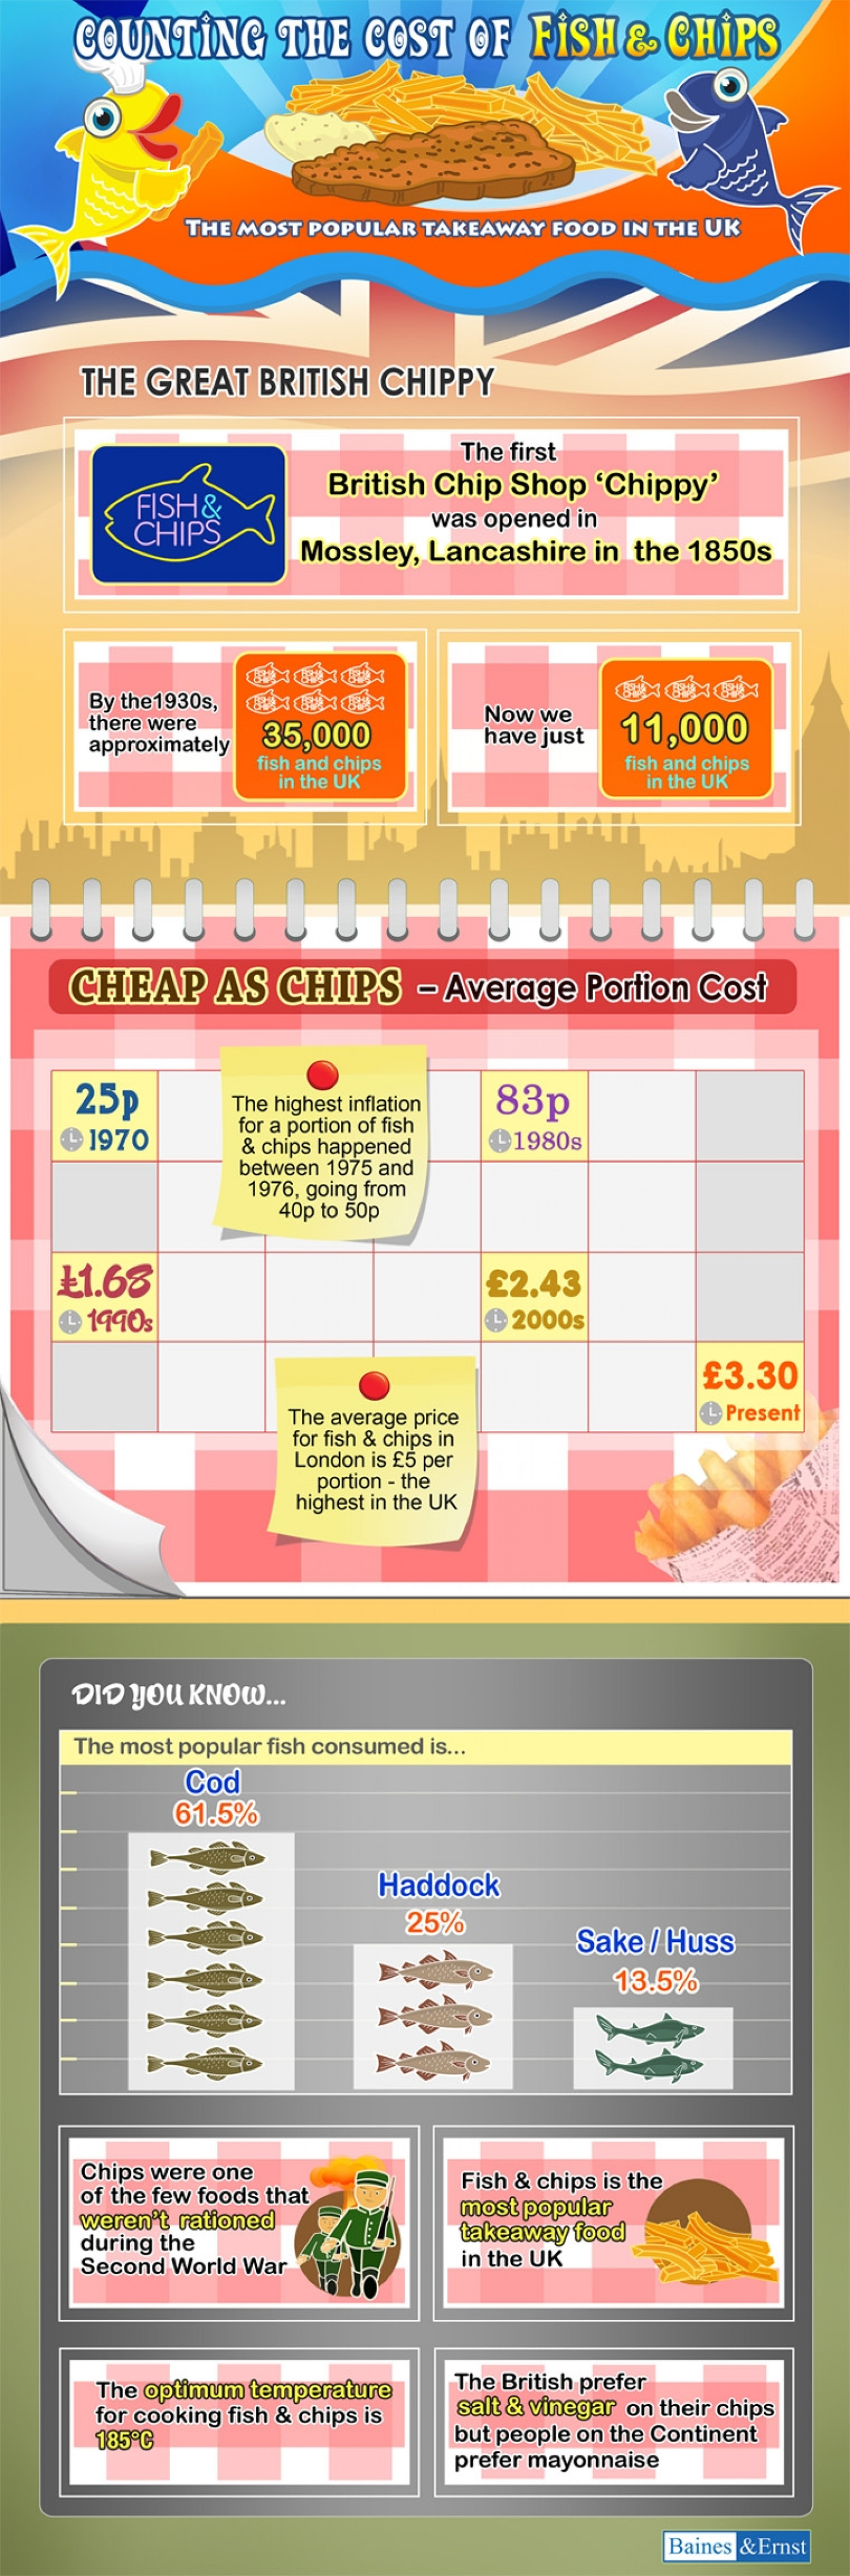 Fish & Chips Inflation Infographic